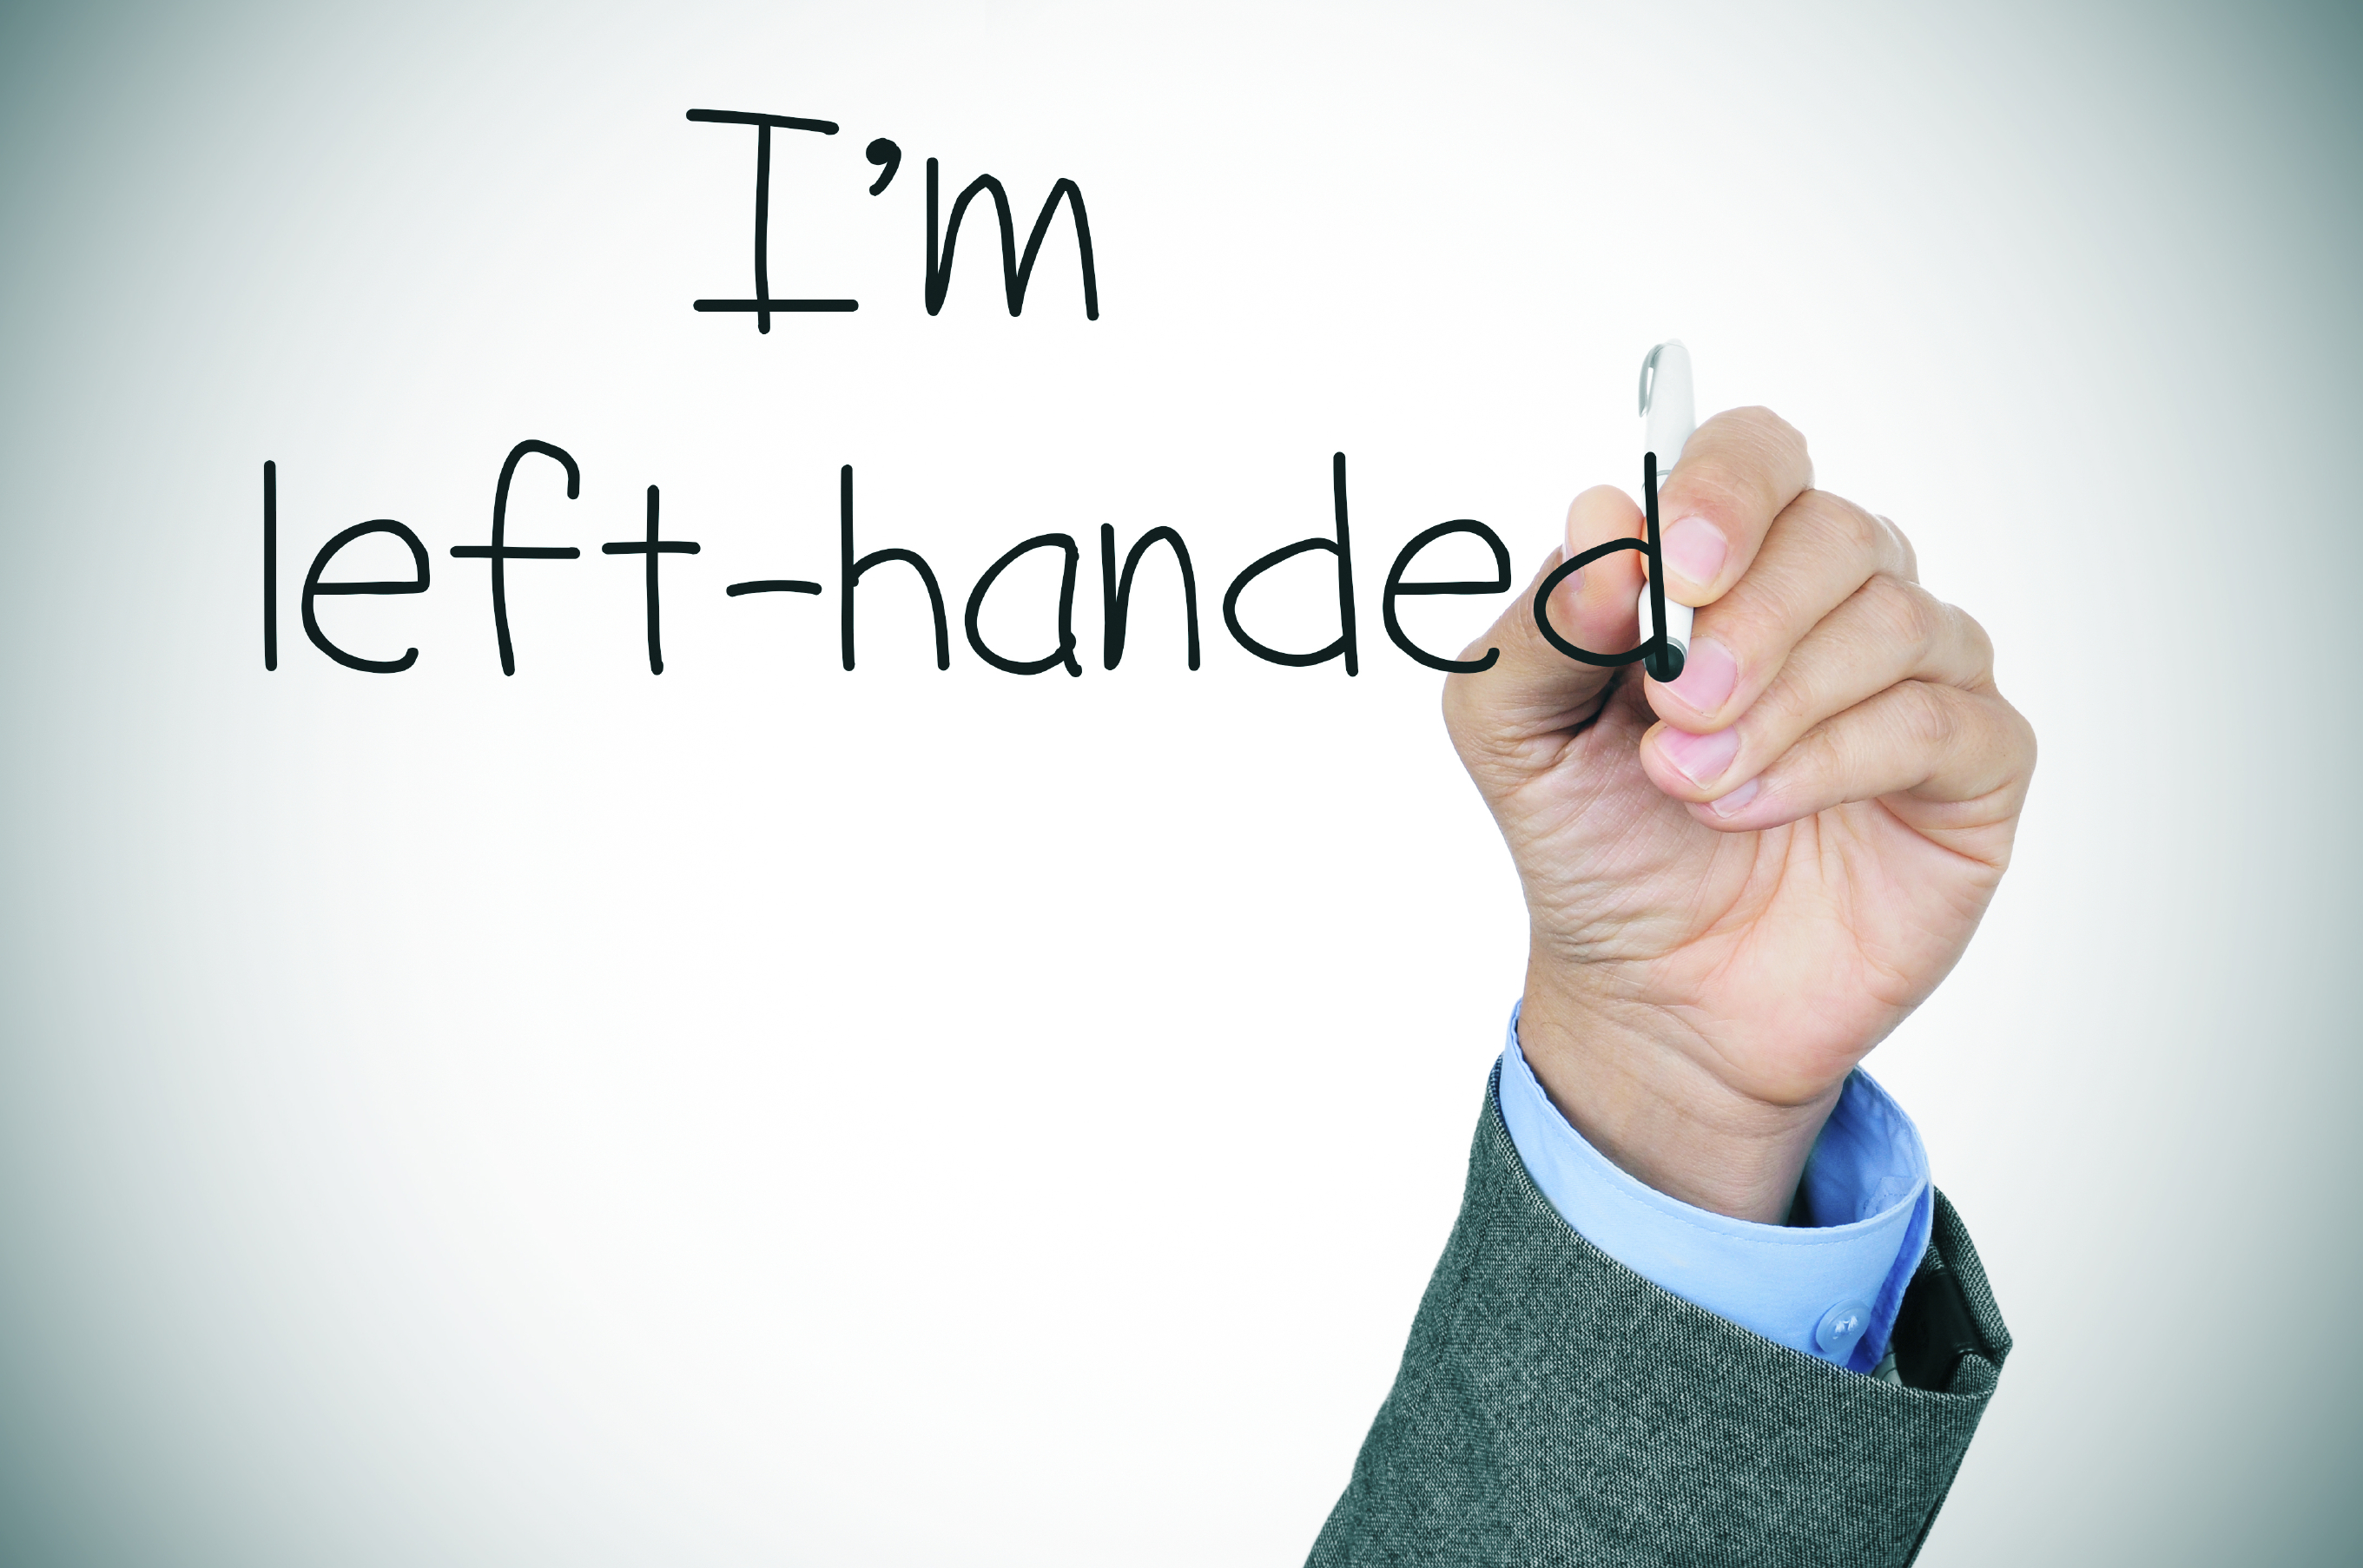 Left Handers Day Ramseys Rules : Left handed  from lydiaramsey.com size 2721 x 1806 jpeg 2684kB